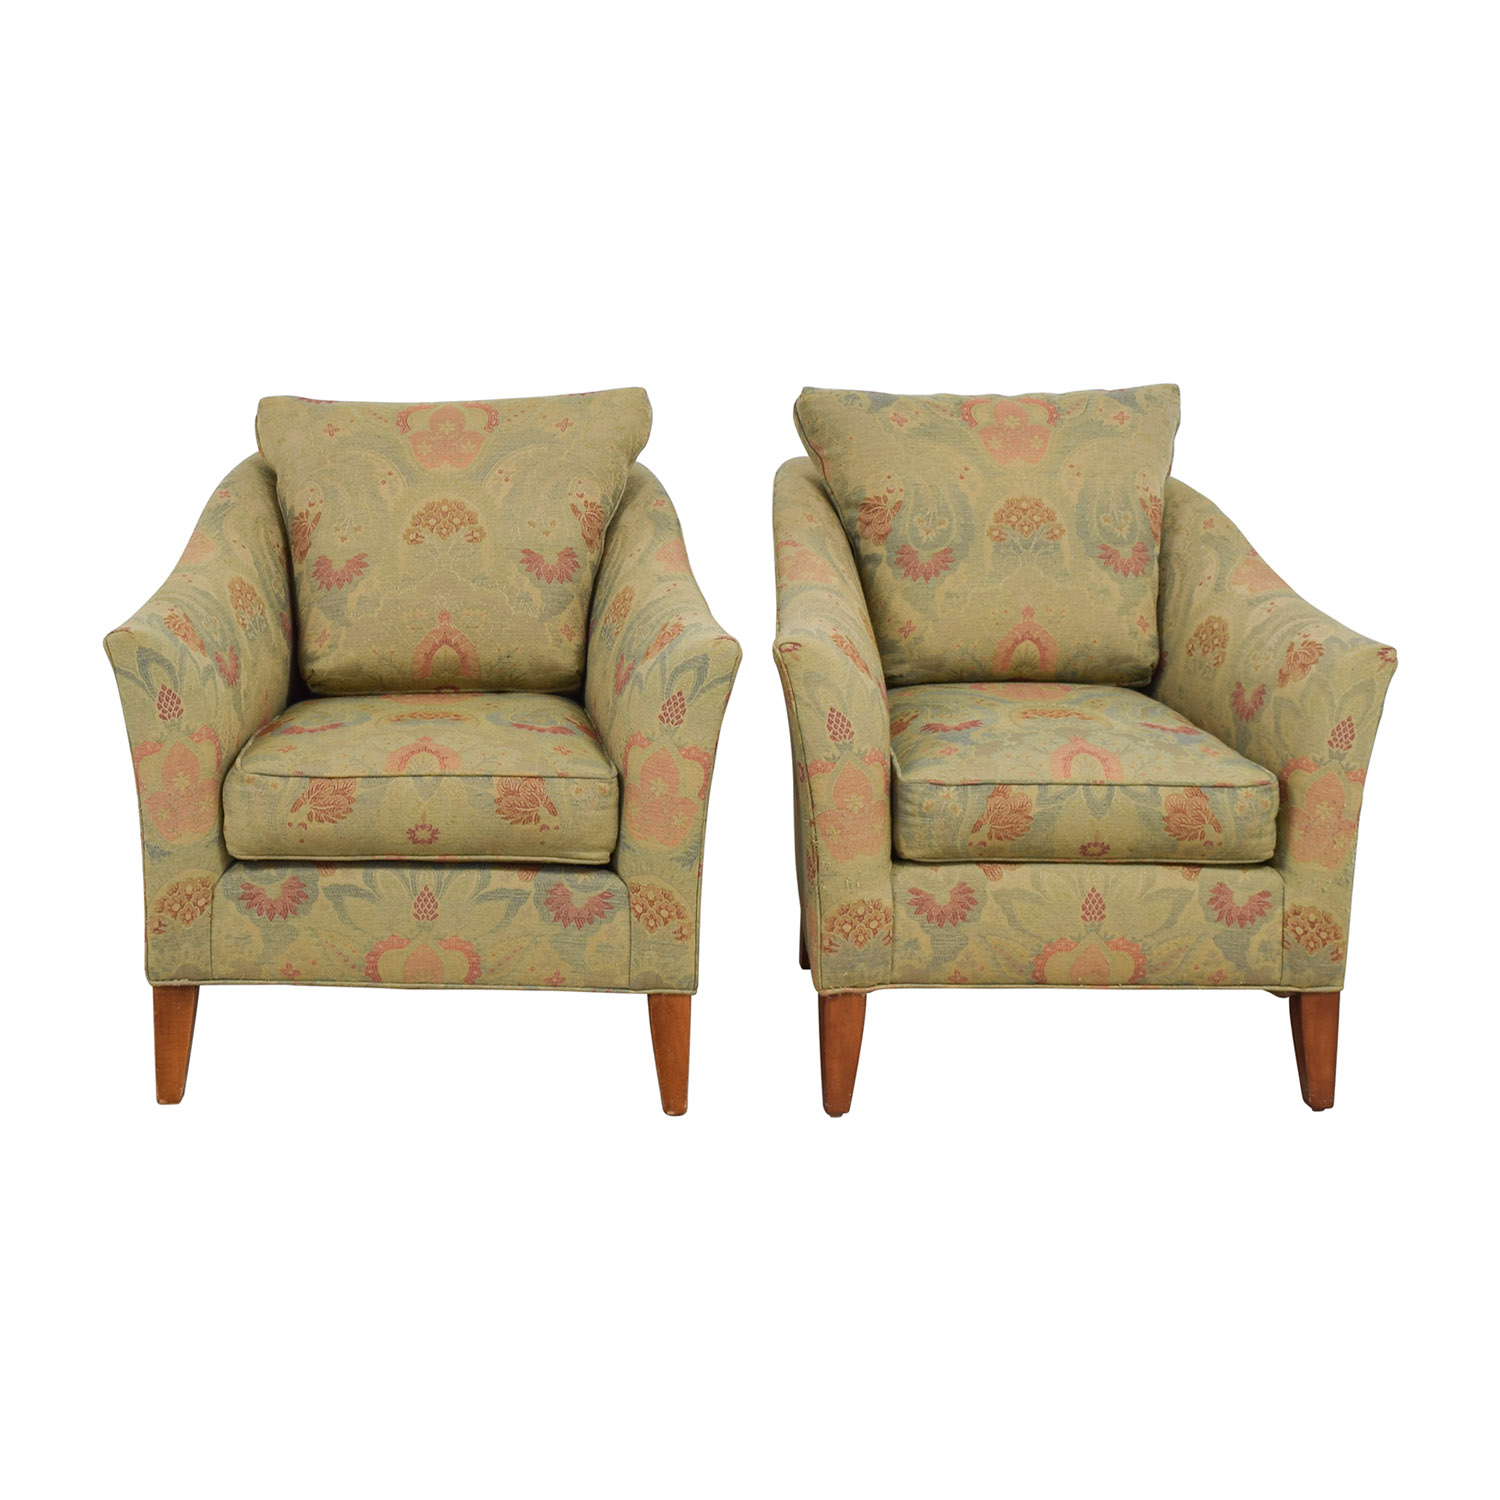 Ethan Allen Ethan Allen Gibson Floral Chairs Nyc ...